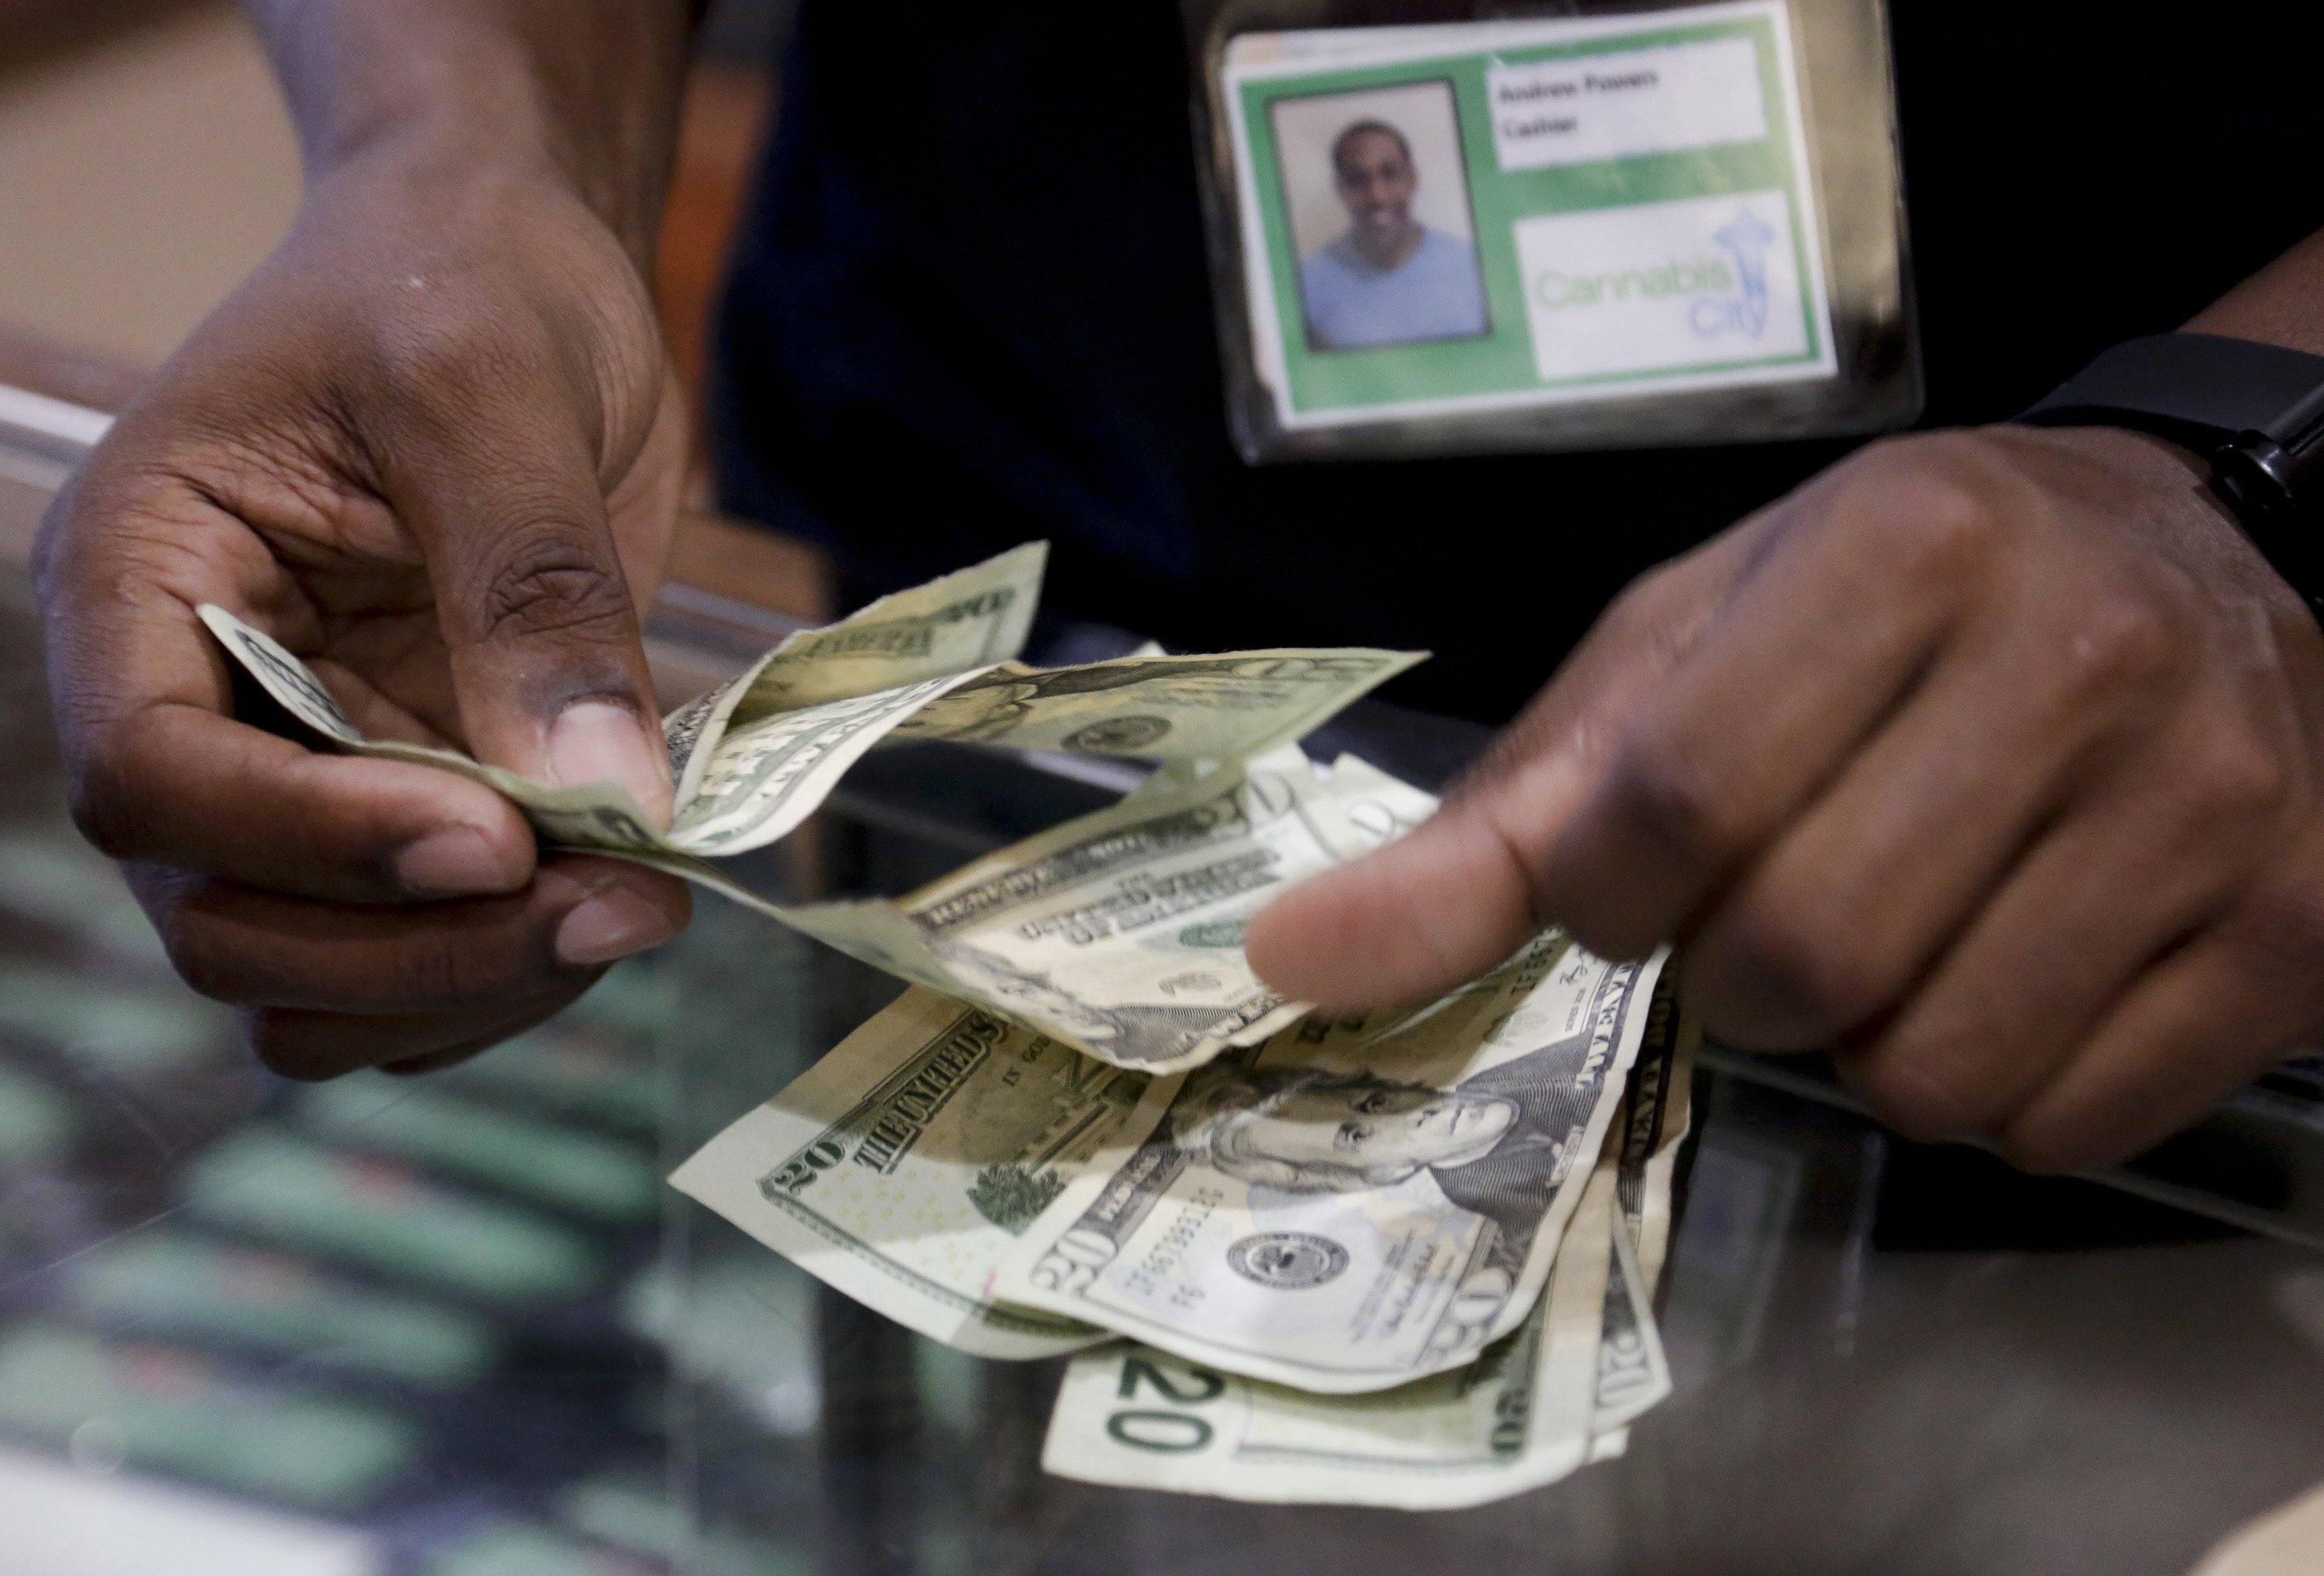 Cashier Andrew Powers completes a cash marijuana purchase at Cannabis City during the first day of legal retail marijuana sales in Seattle on July 8, 2014.